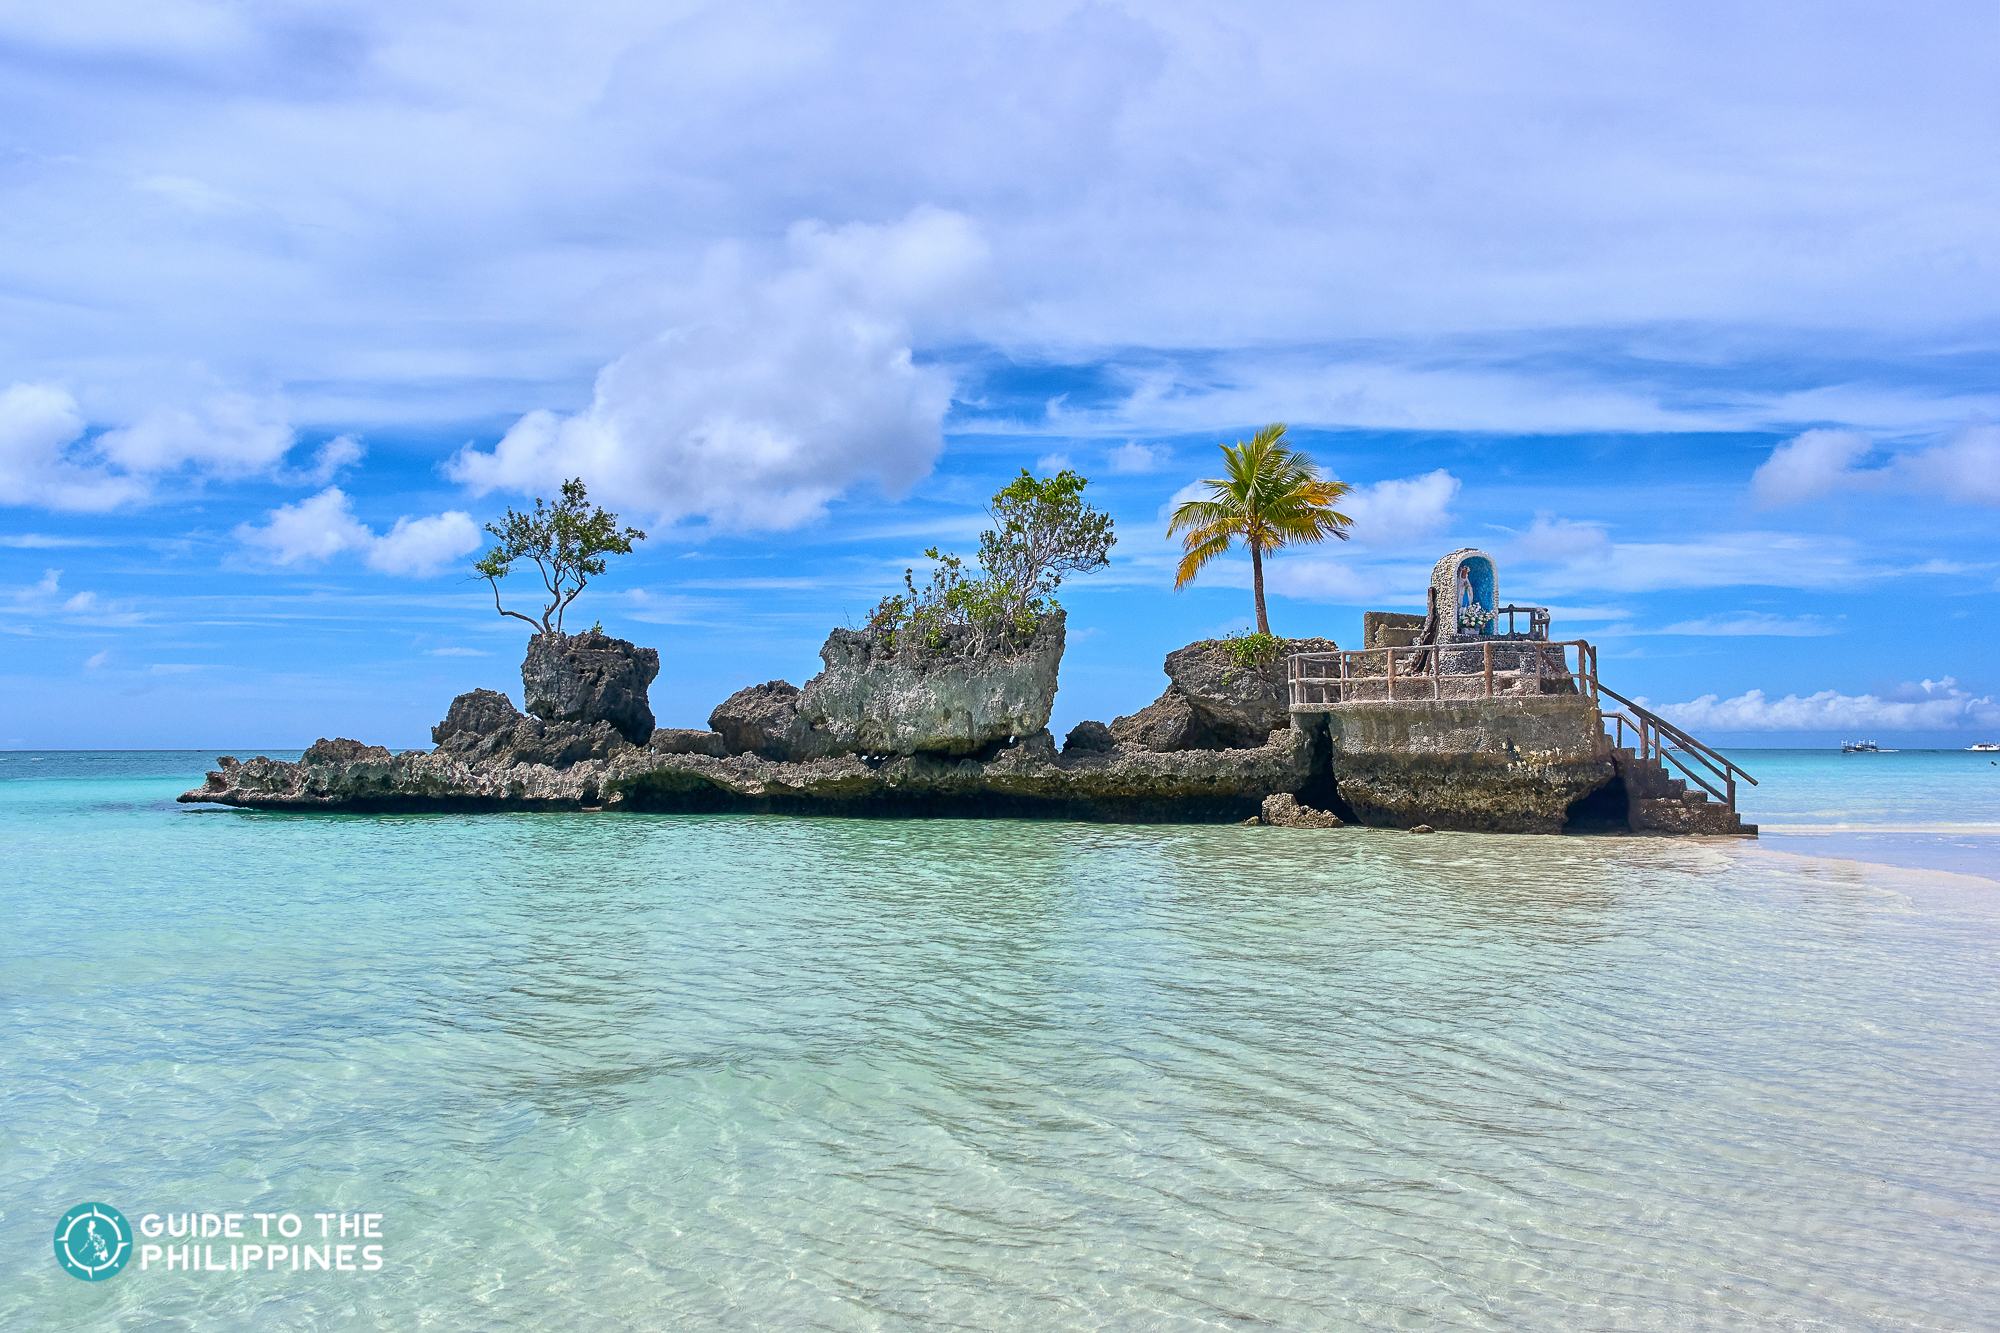 Package Deal to Boracay with Tides Hotel & Philippine Airlines for 3 Days & 2 Nights from Manila - day 3